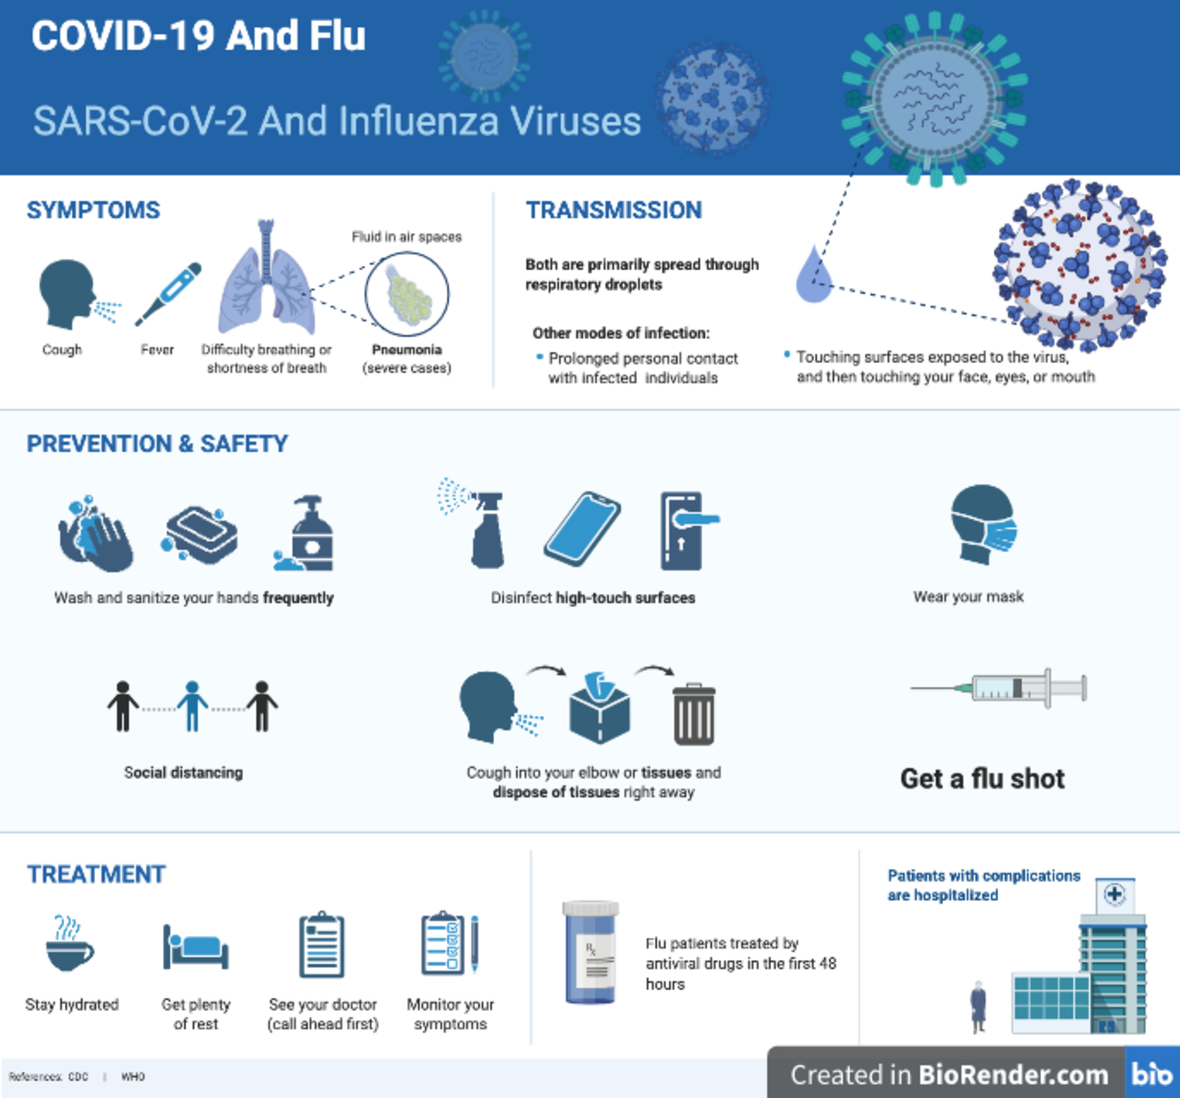 COVID-19 and Flu Safety Guidelines